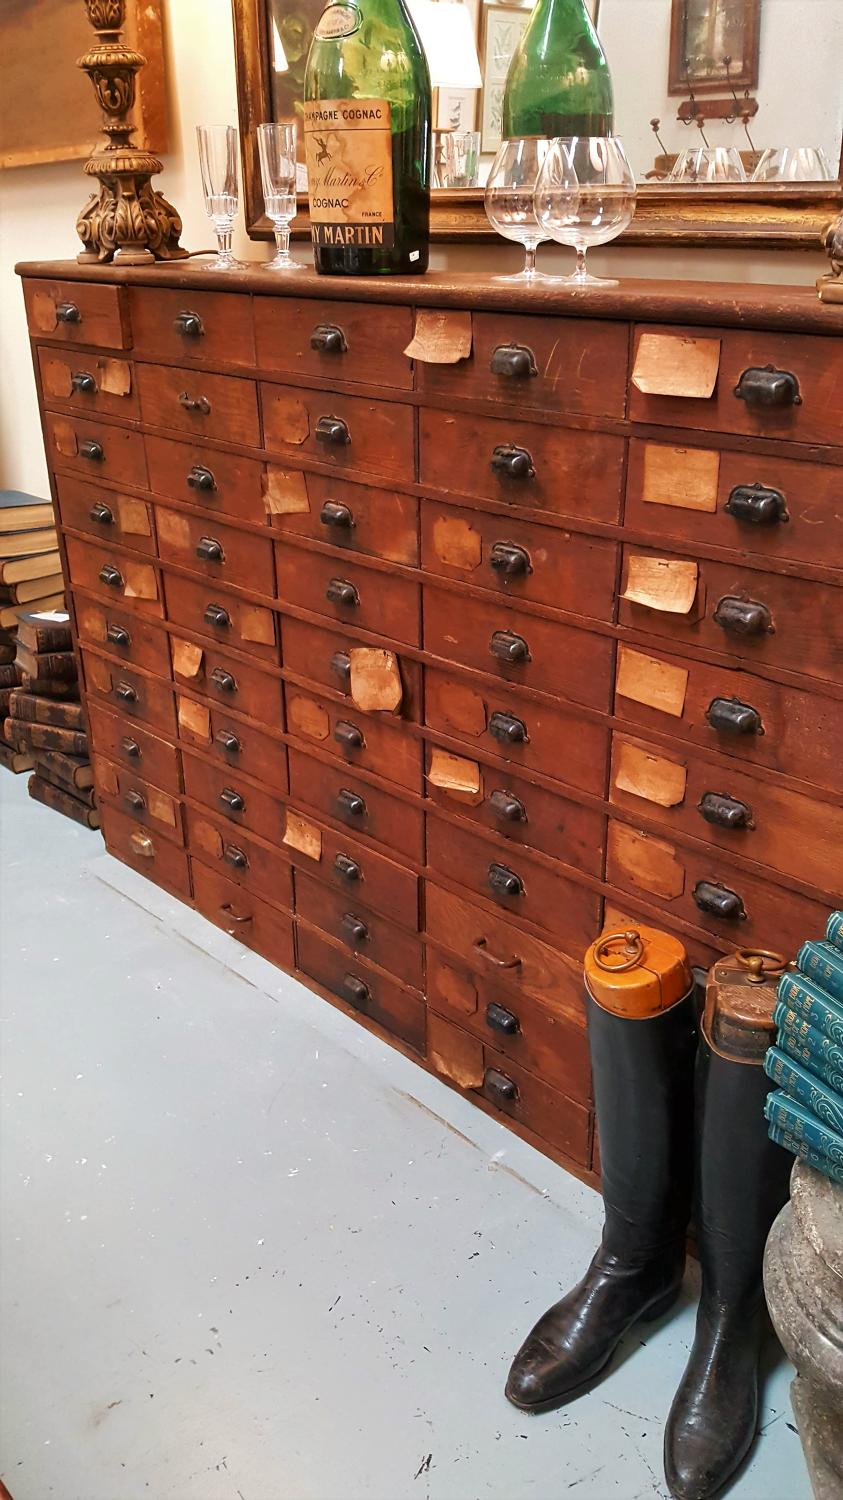 French Industrial Bank of drawers